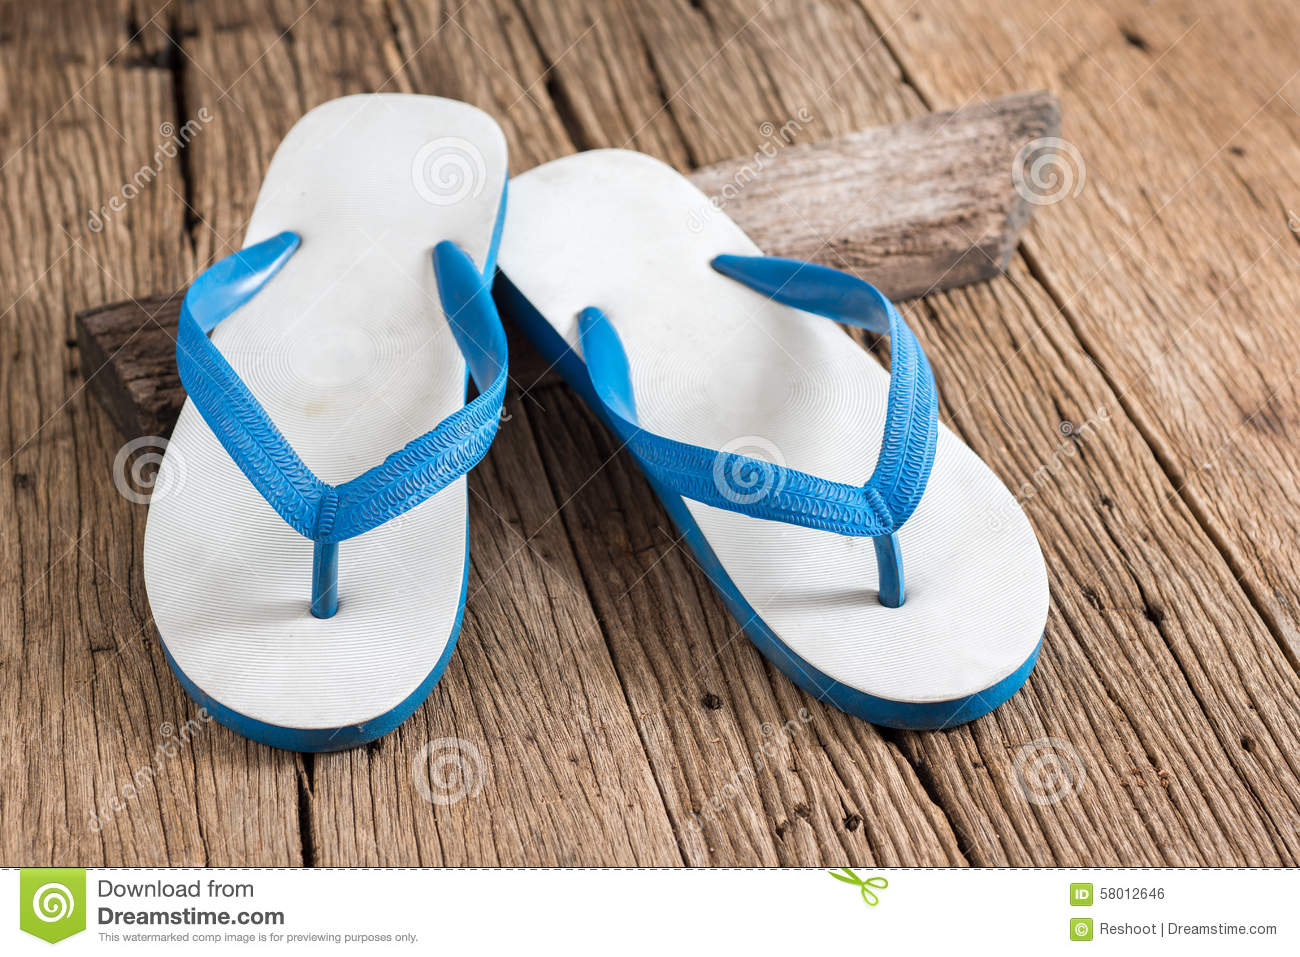 Rubber slippers stock photo. Image of